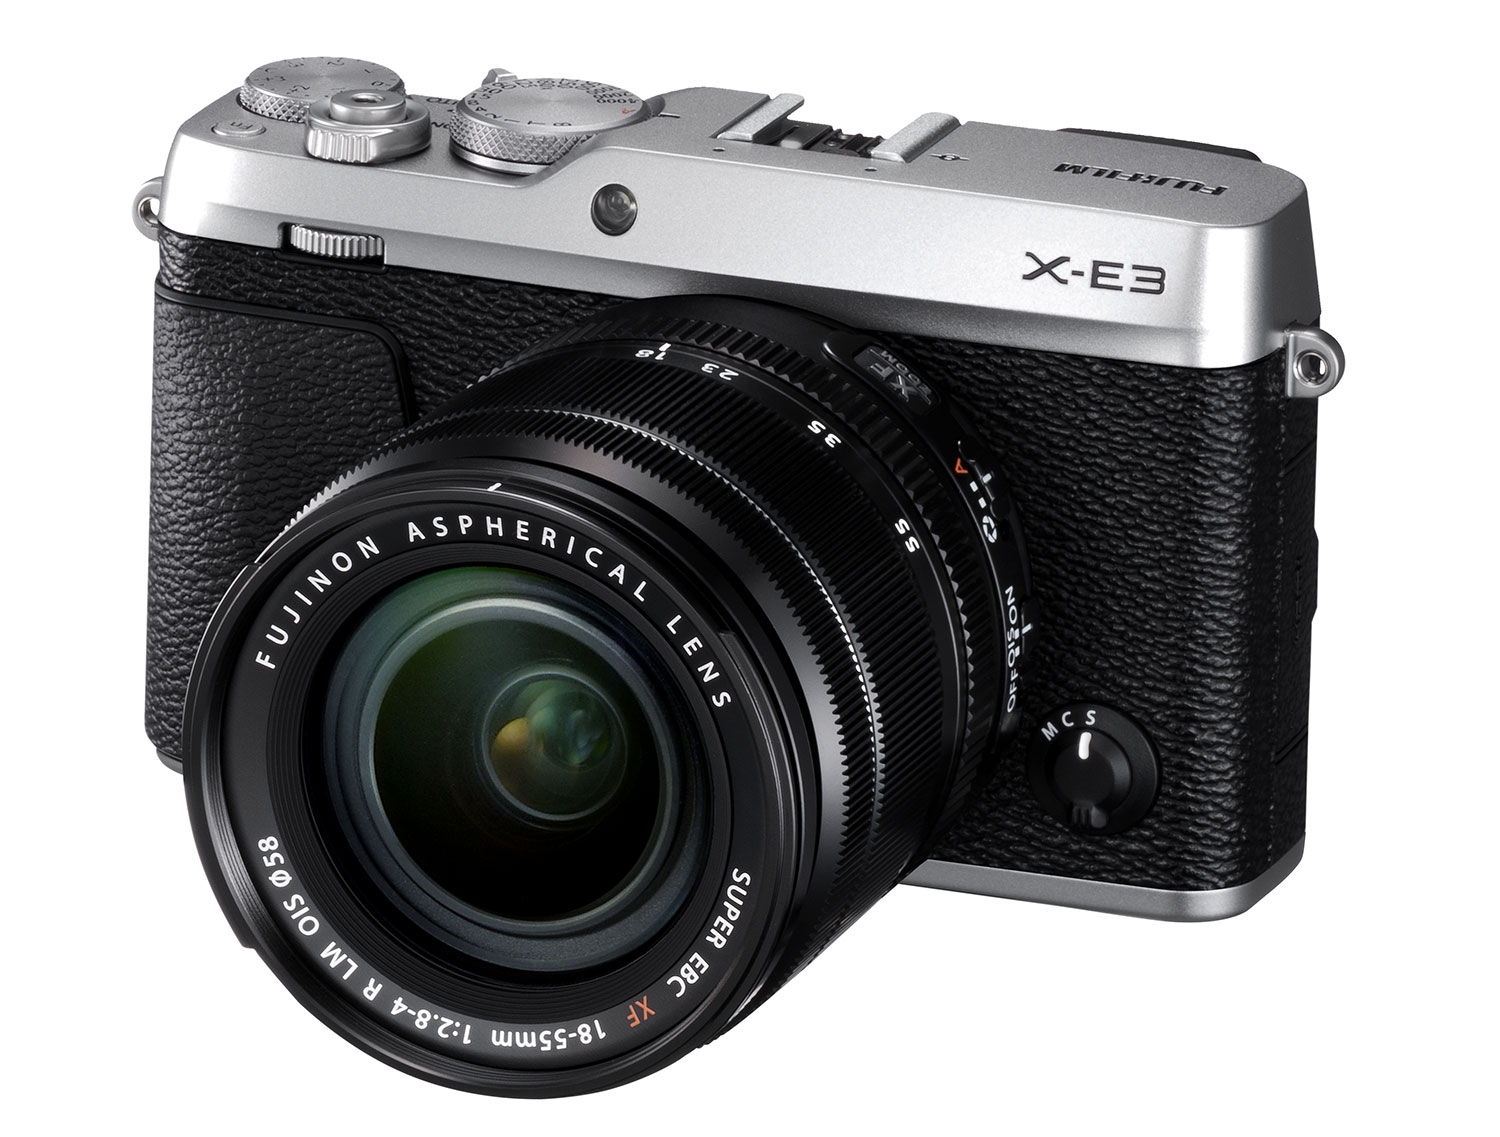 Fujifilm unveil the X-E3 mirrorless camera